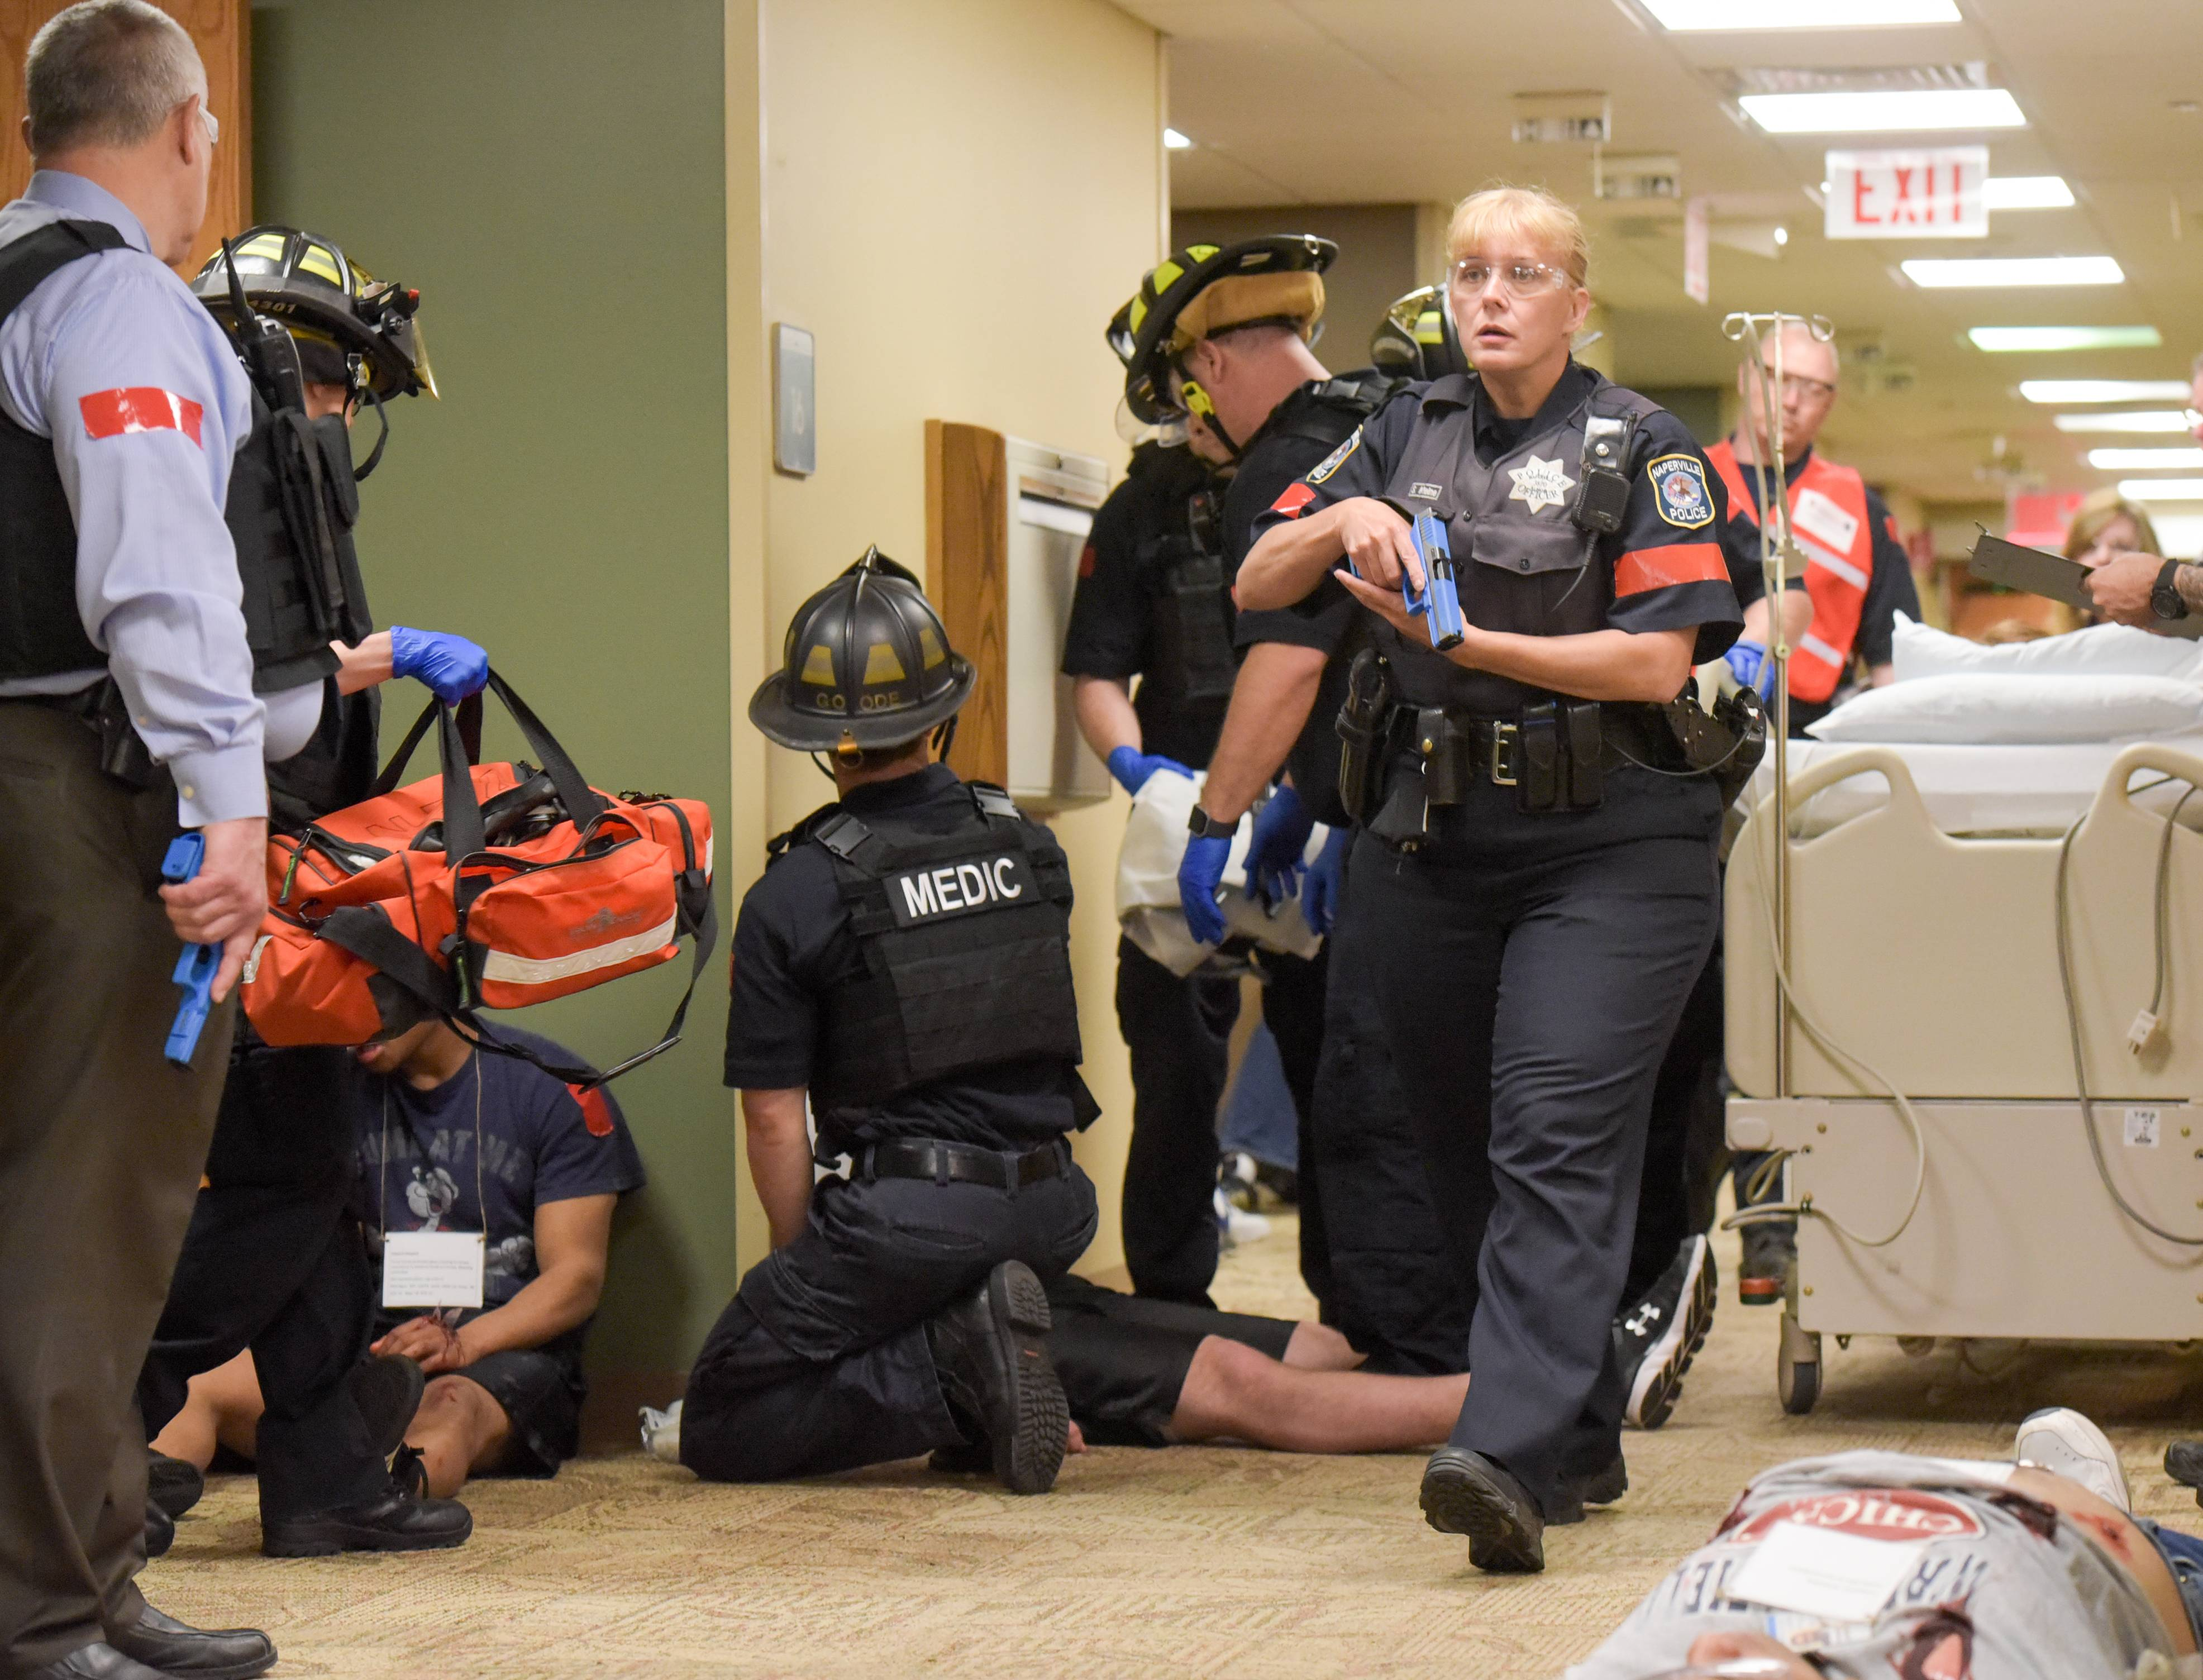 Naperville officers secure the scene as paramedics tend to actors pretending to be injured during an active shooter drill.